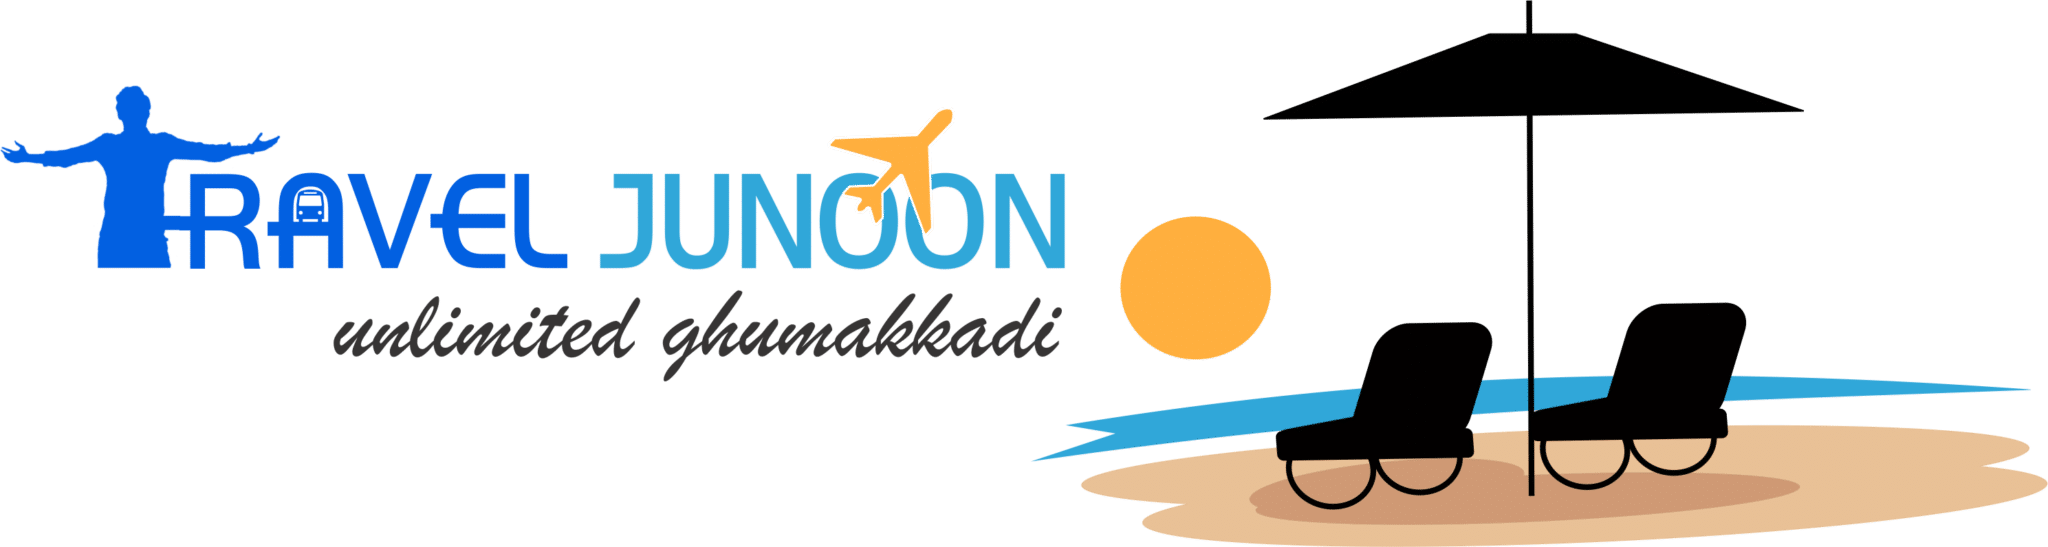 Travel Junoon Website Logo - Travel Website in Hindi Language